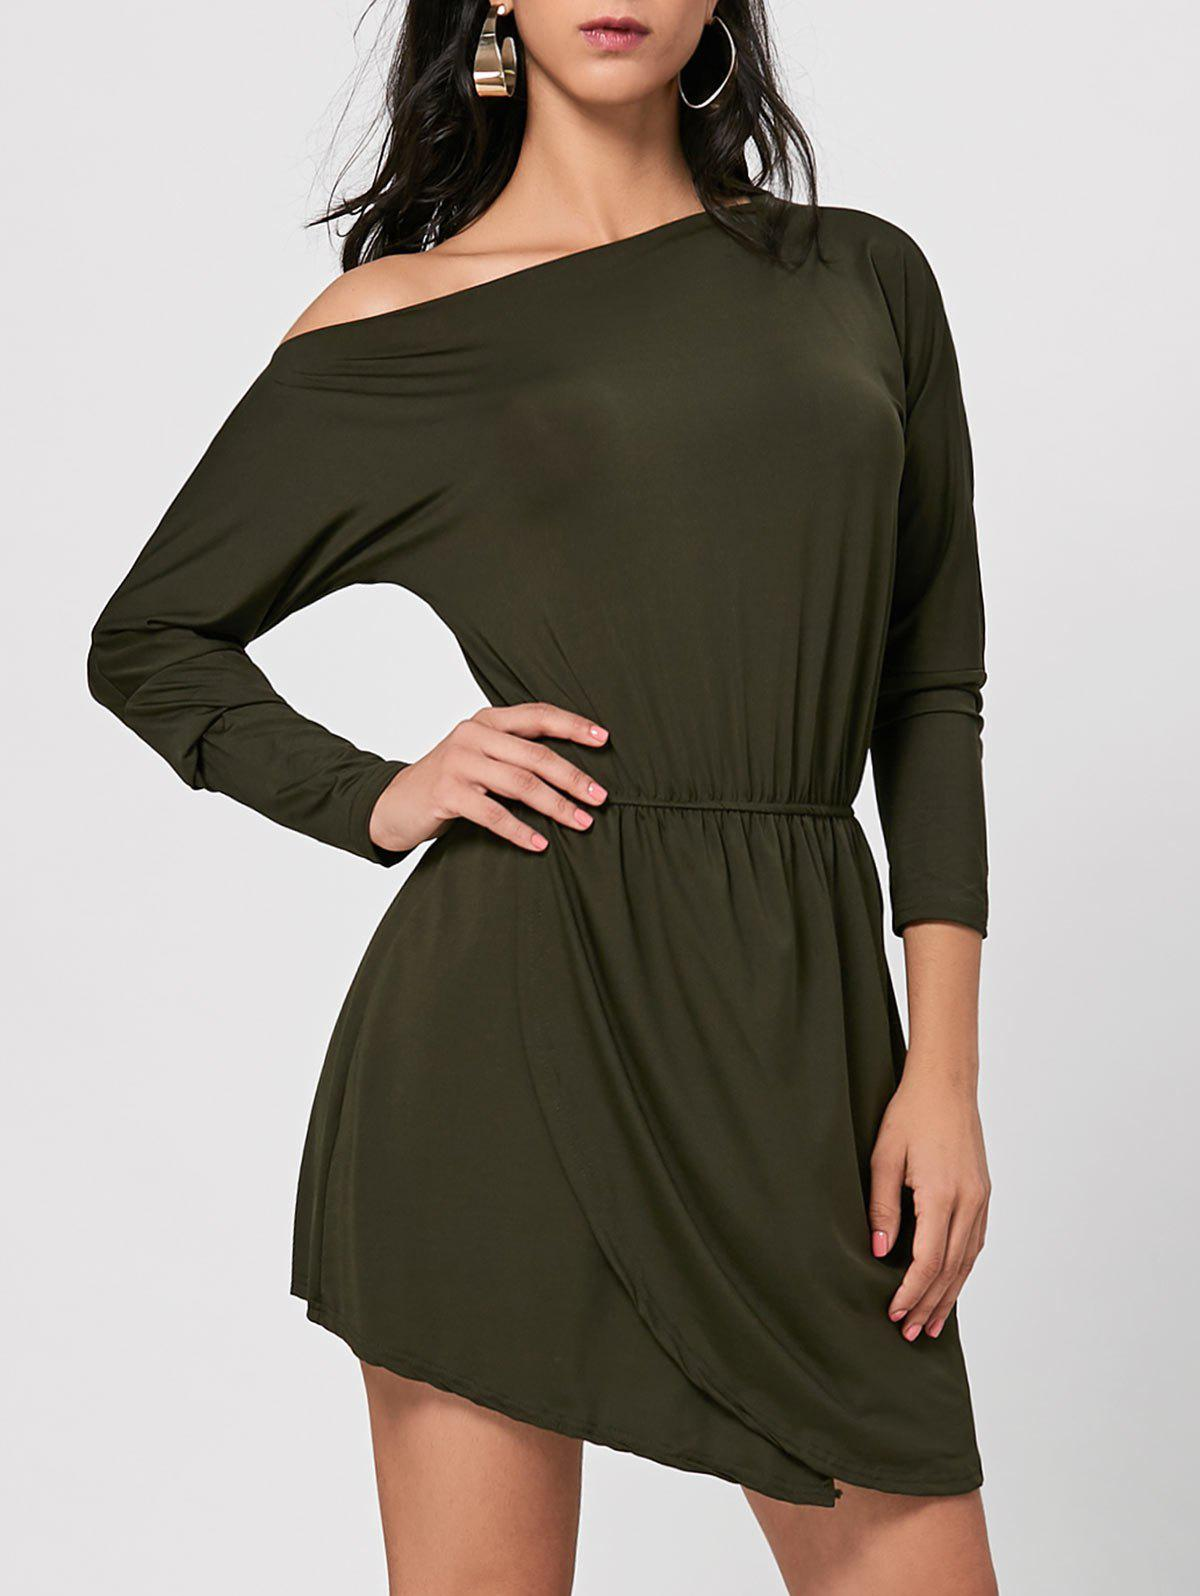 Skew Neck Asymmetrical Mini Dress - ARMY GREEN M